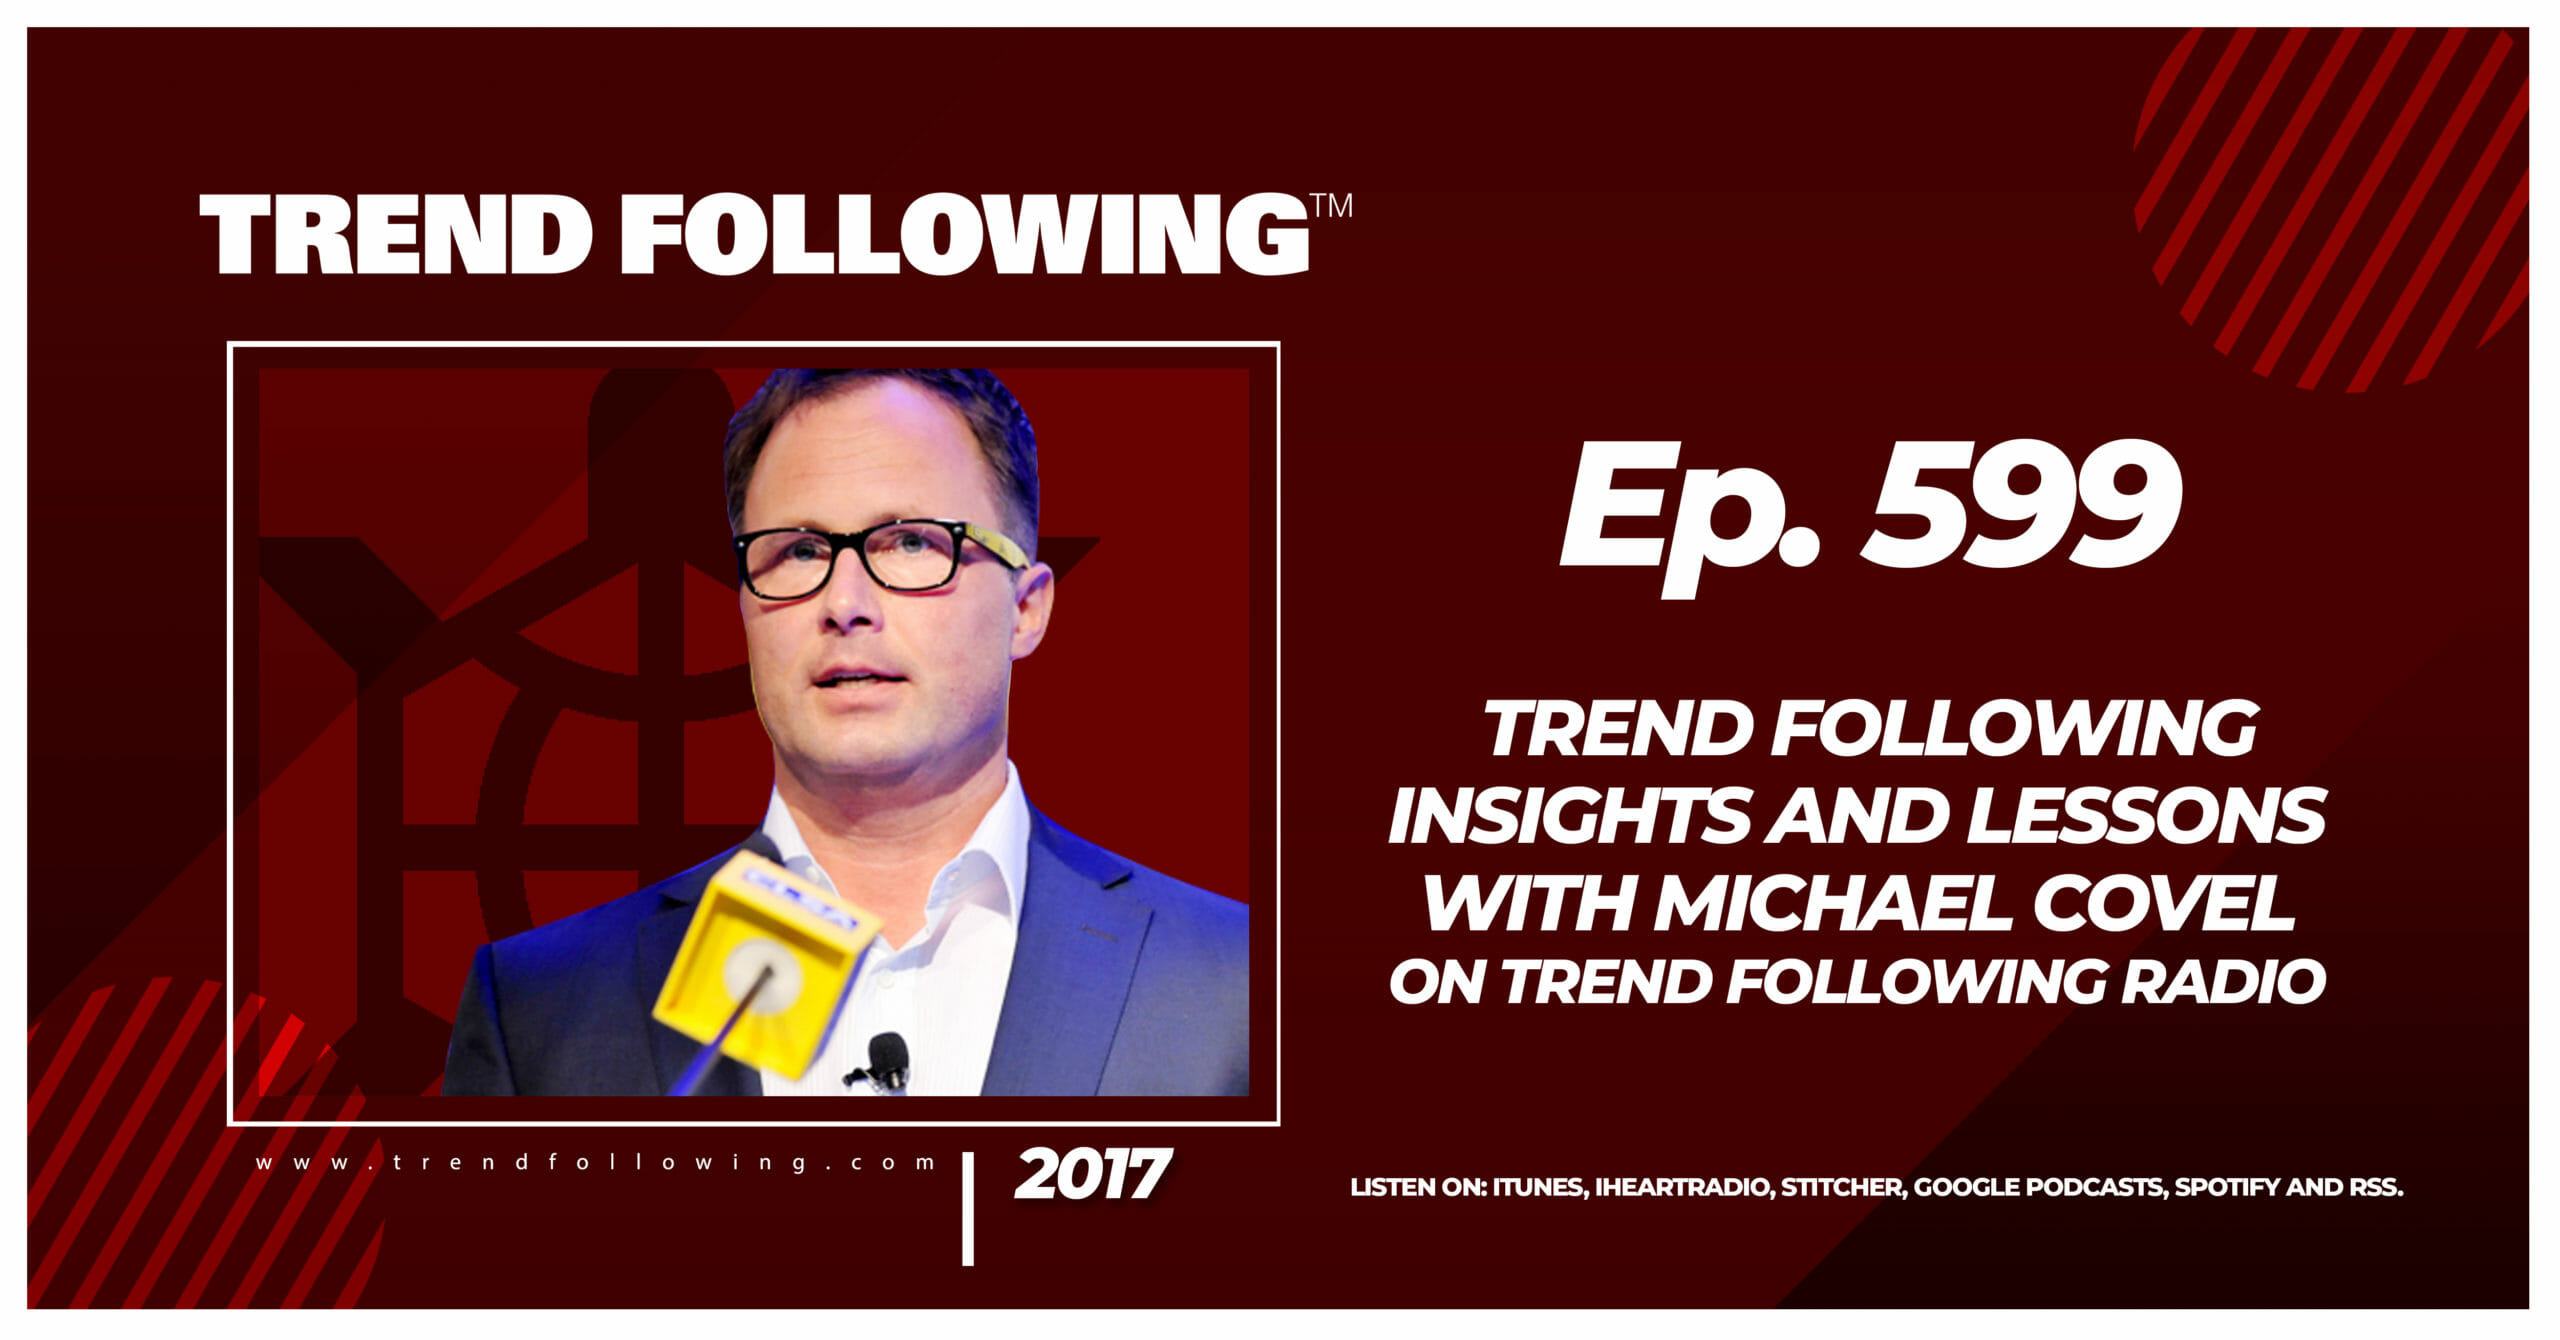 Trend Following Insights and Lessons with Michael Covel on Trend Following Radio